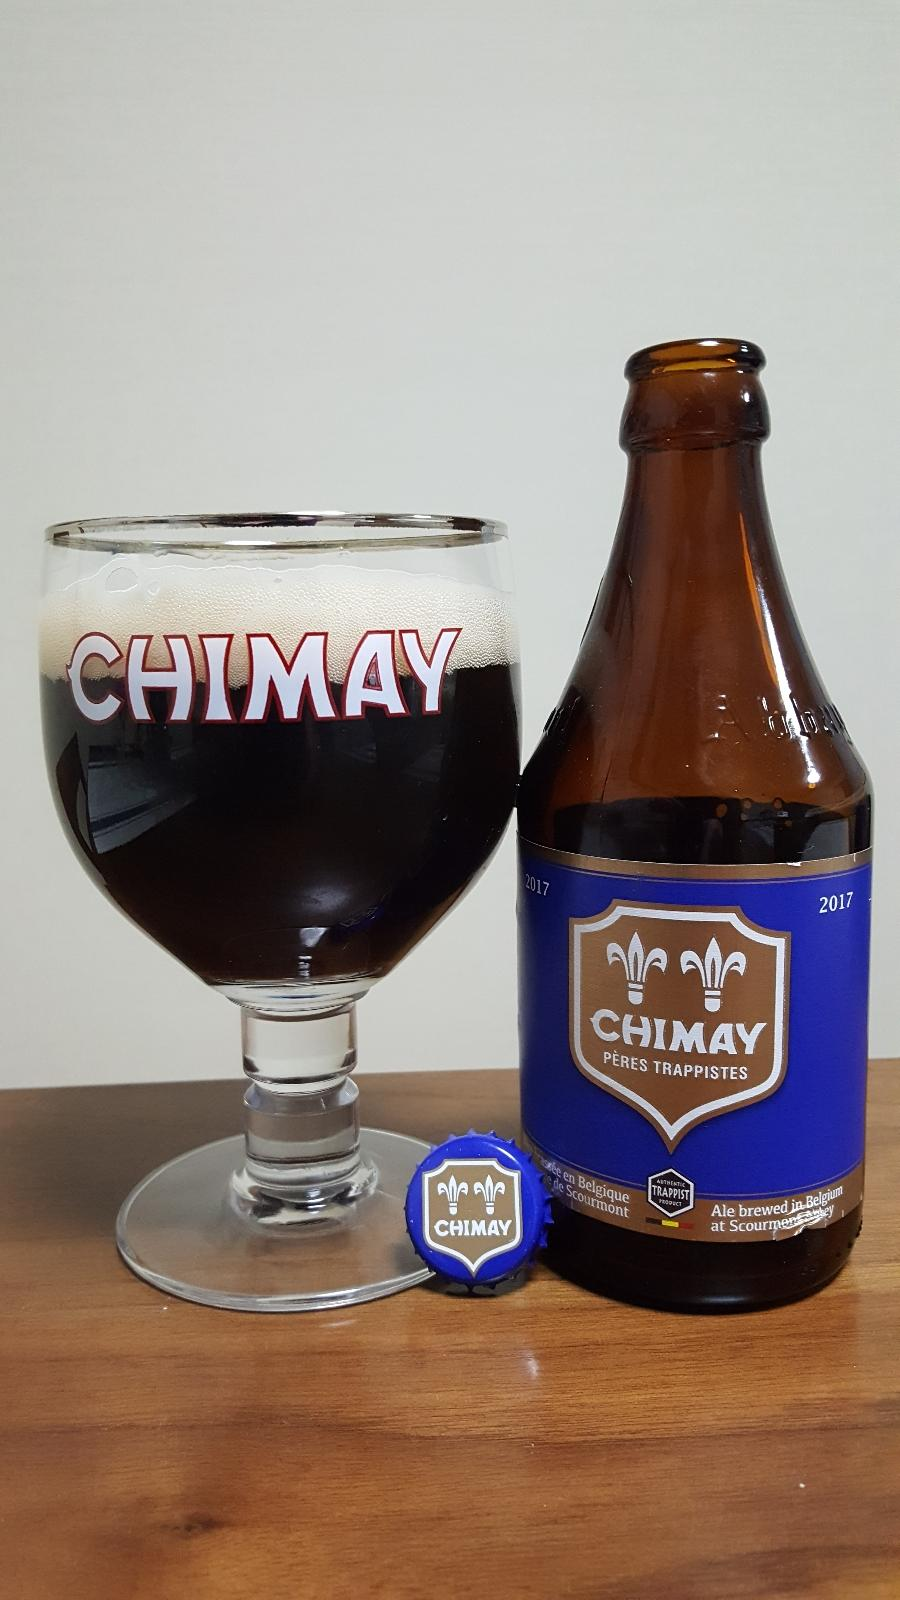 Chimay Pères Trappistes (Blue) 2017